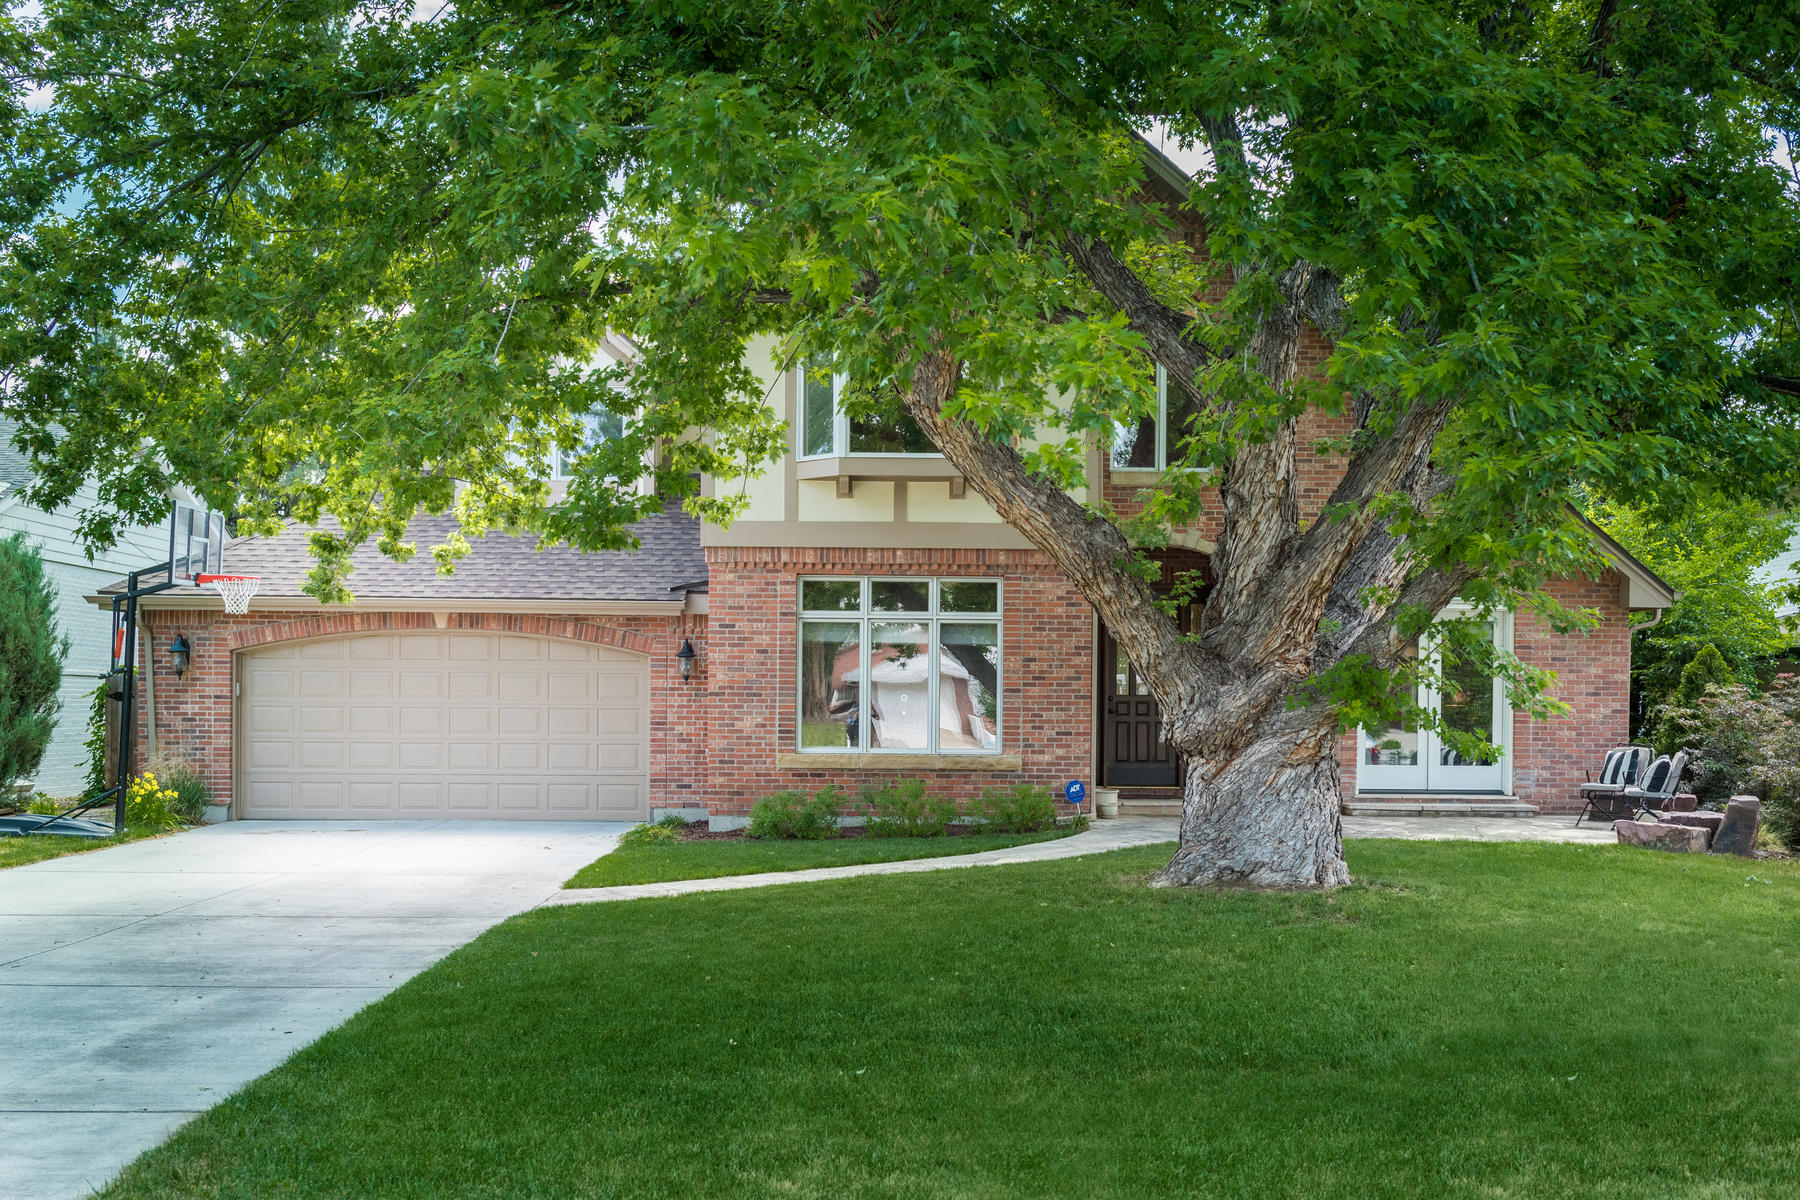 Additional photo for property listing at Luxurious Tudor In The Heart Of Hilltop! 130 Elm Street Denver, Colorado 80220 United States